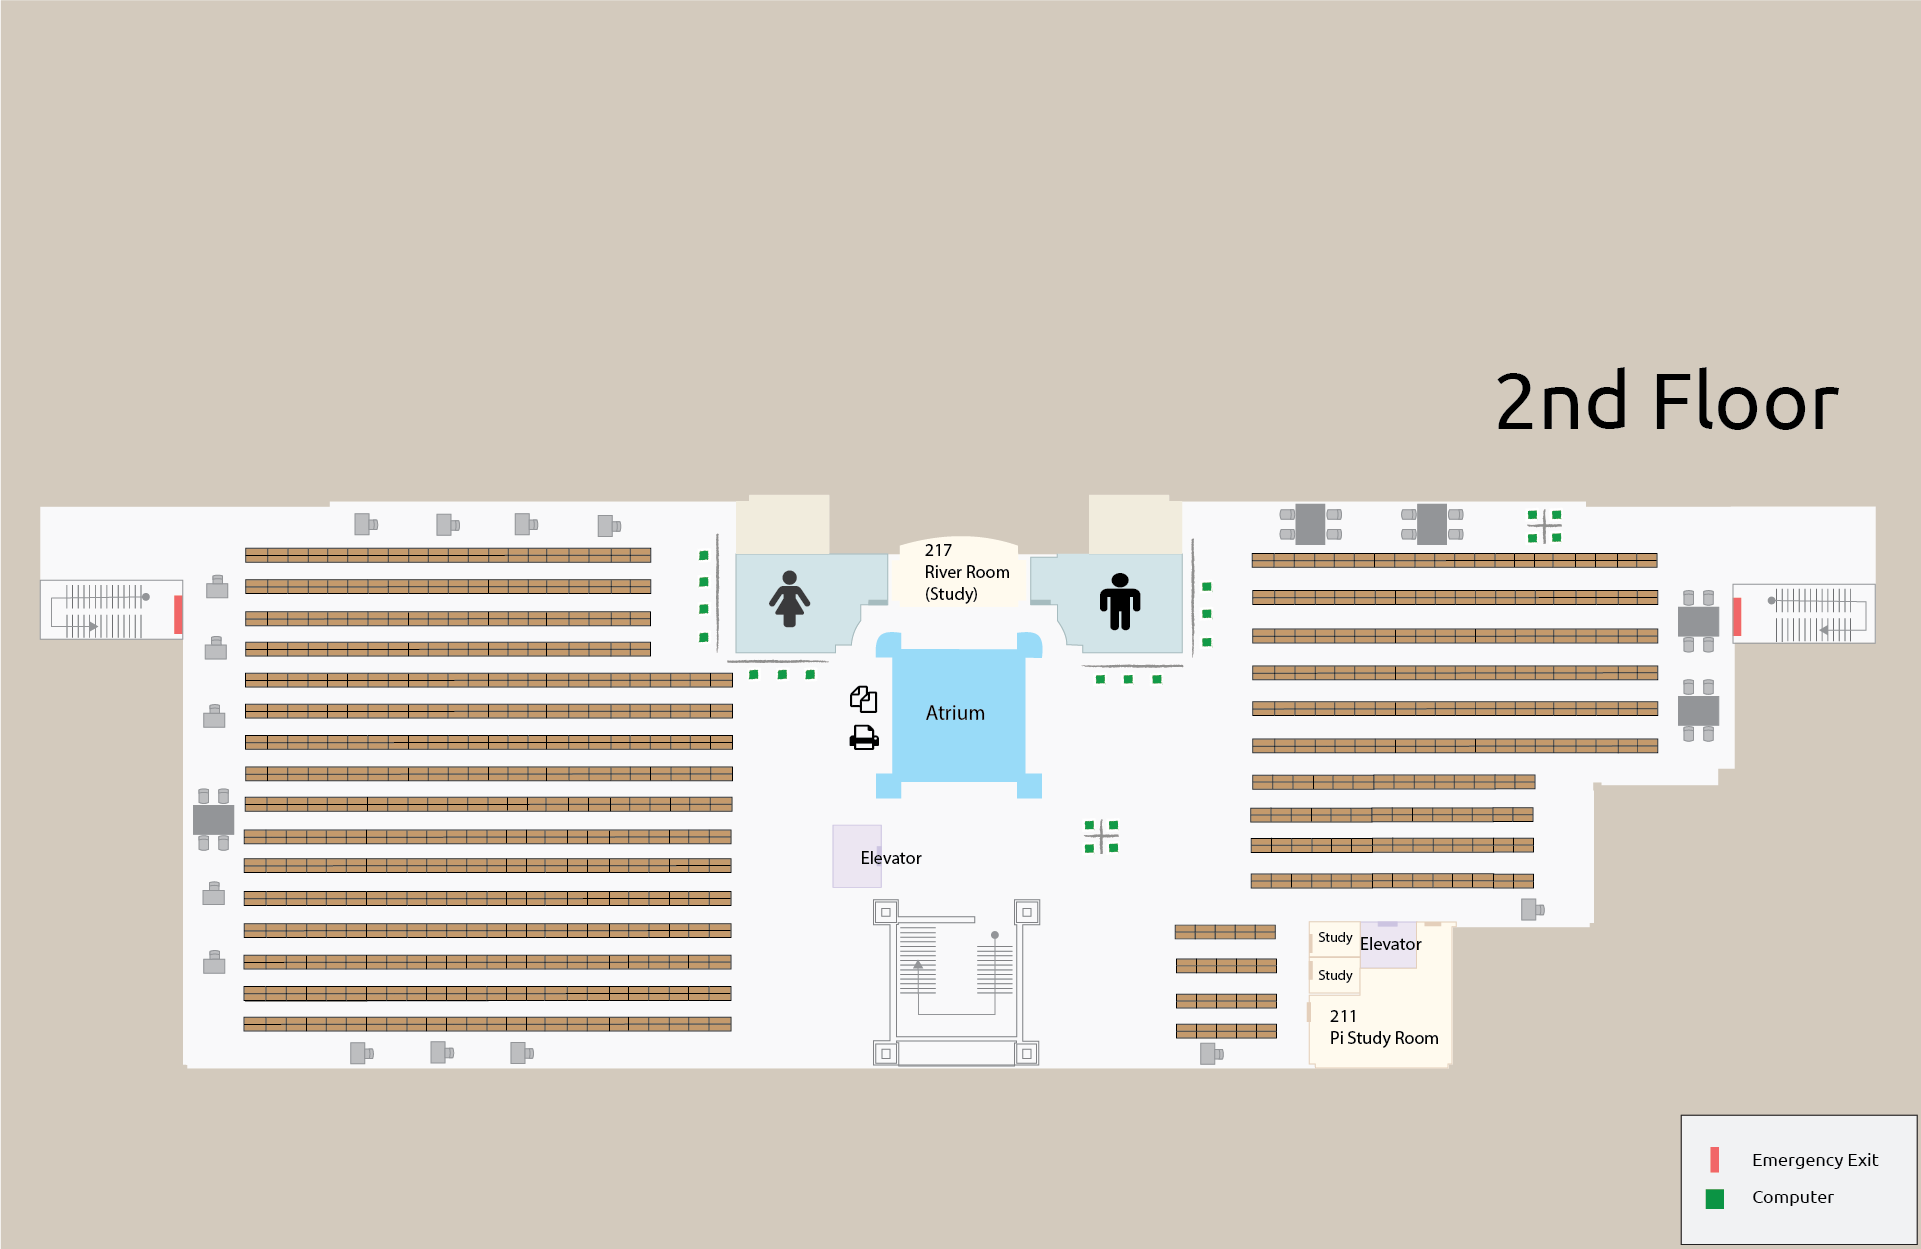 rodgers floor plans u2013 the university of alabama libraries